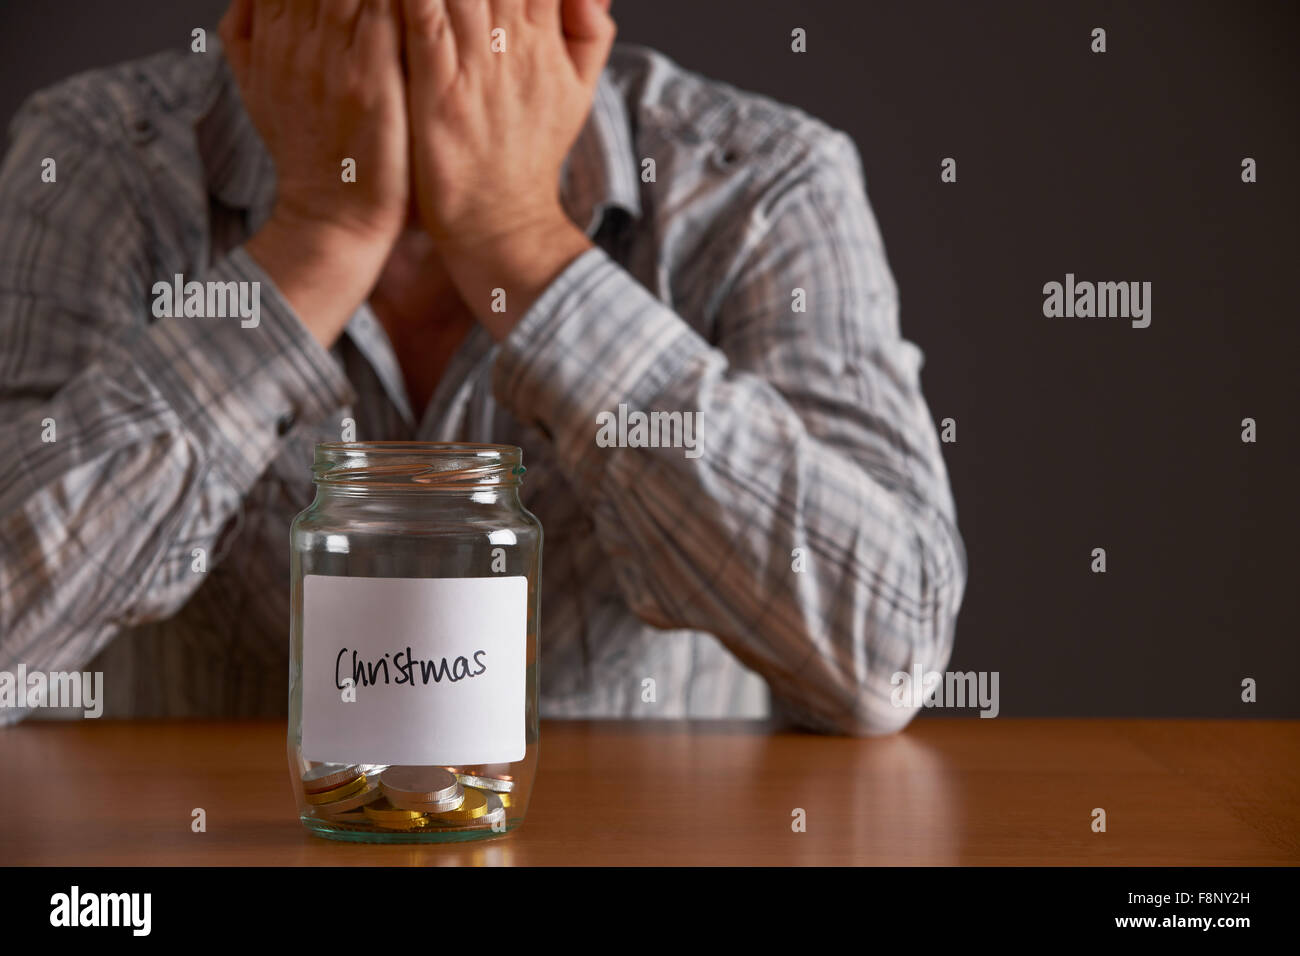 Man With Head In Hands Looking At Jar Labelled Christmas Stock Photo